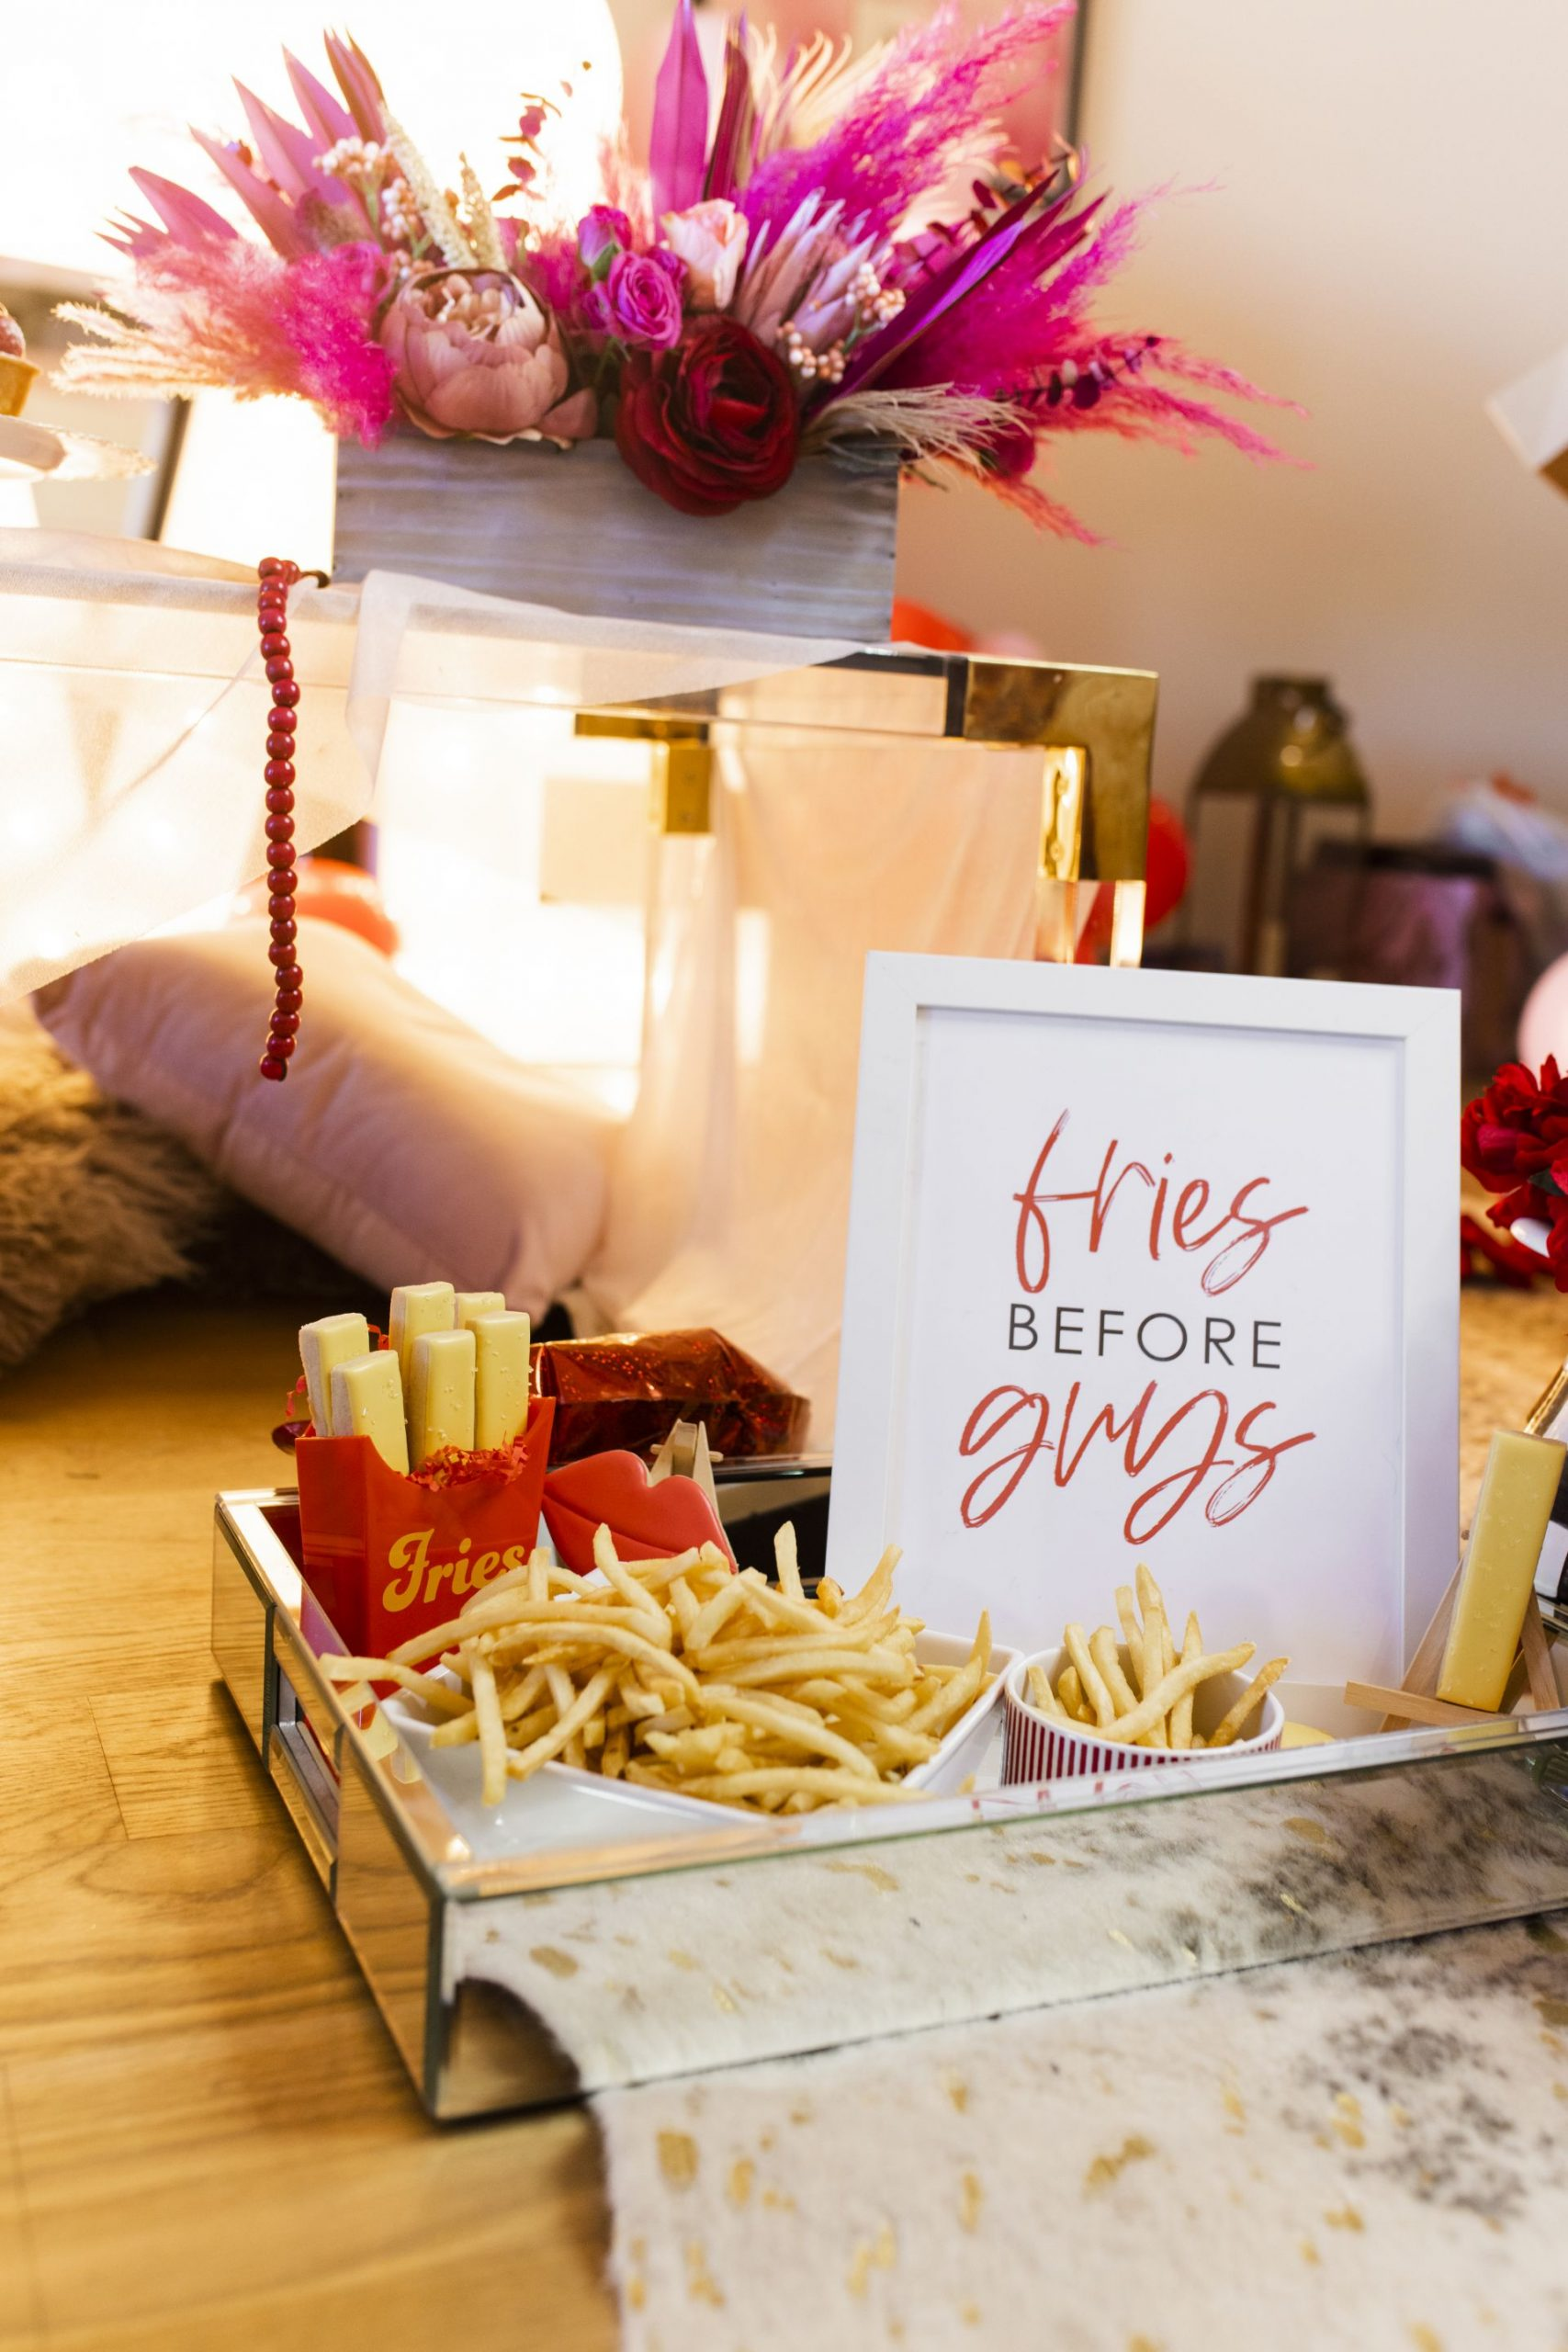 girls night party ideas, fries before guys party set up, girls night in ideas, girls night in party, valentine's day table setting, galentine's table setting, girls night table setting, hearts table settings, girly partytheme decor, love party theme decor,valentines day party ideas,valentines day party ideas for adults, Red Soles and Red Wine